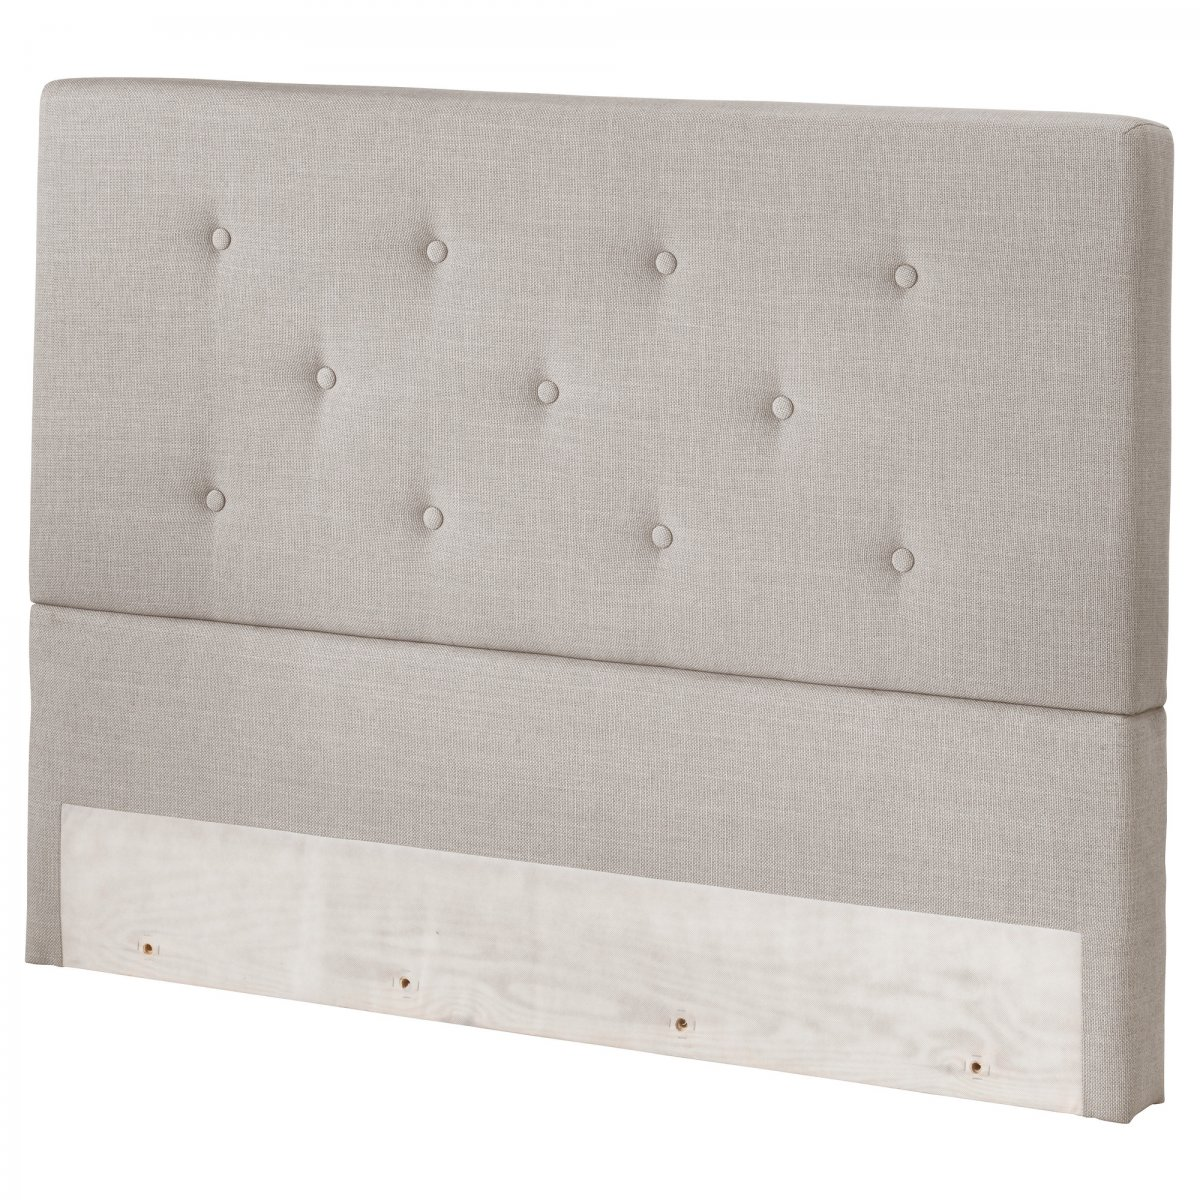 Headboard at ikea give your bedroom more storages and for Simple headboards